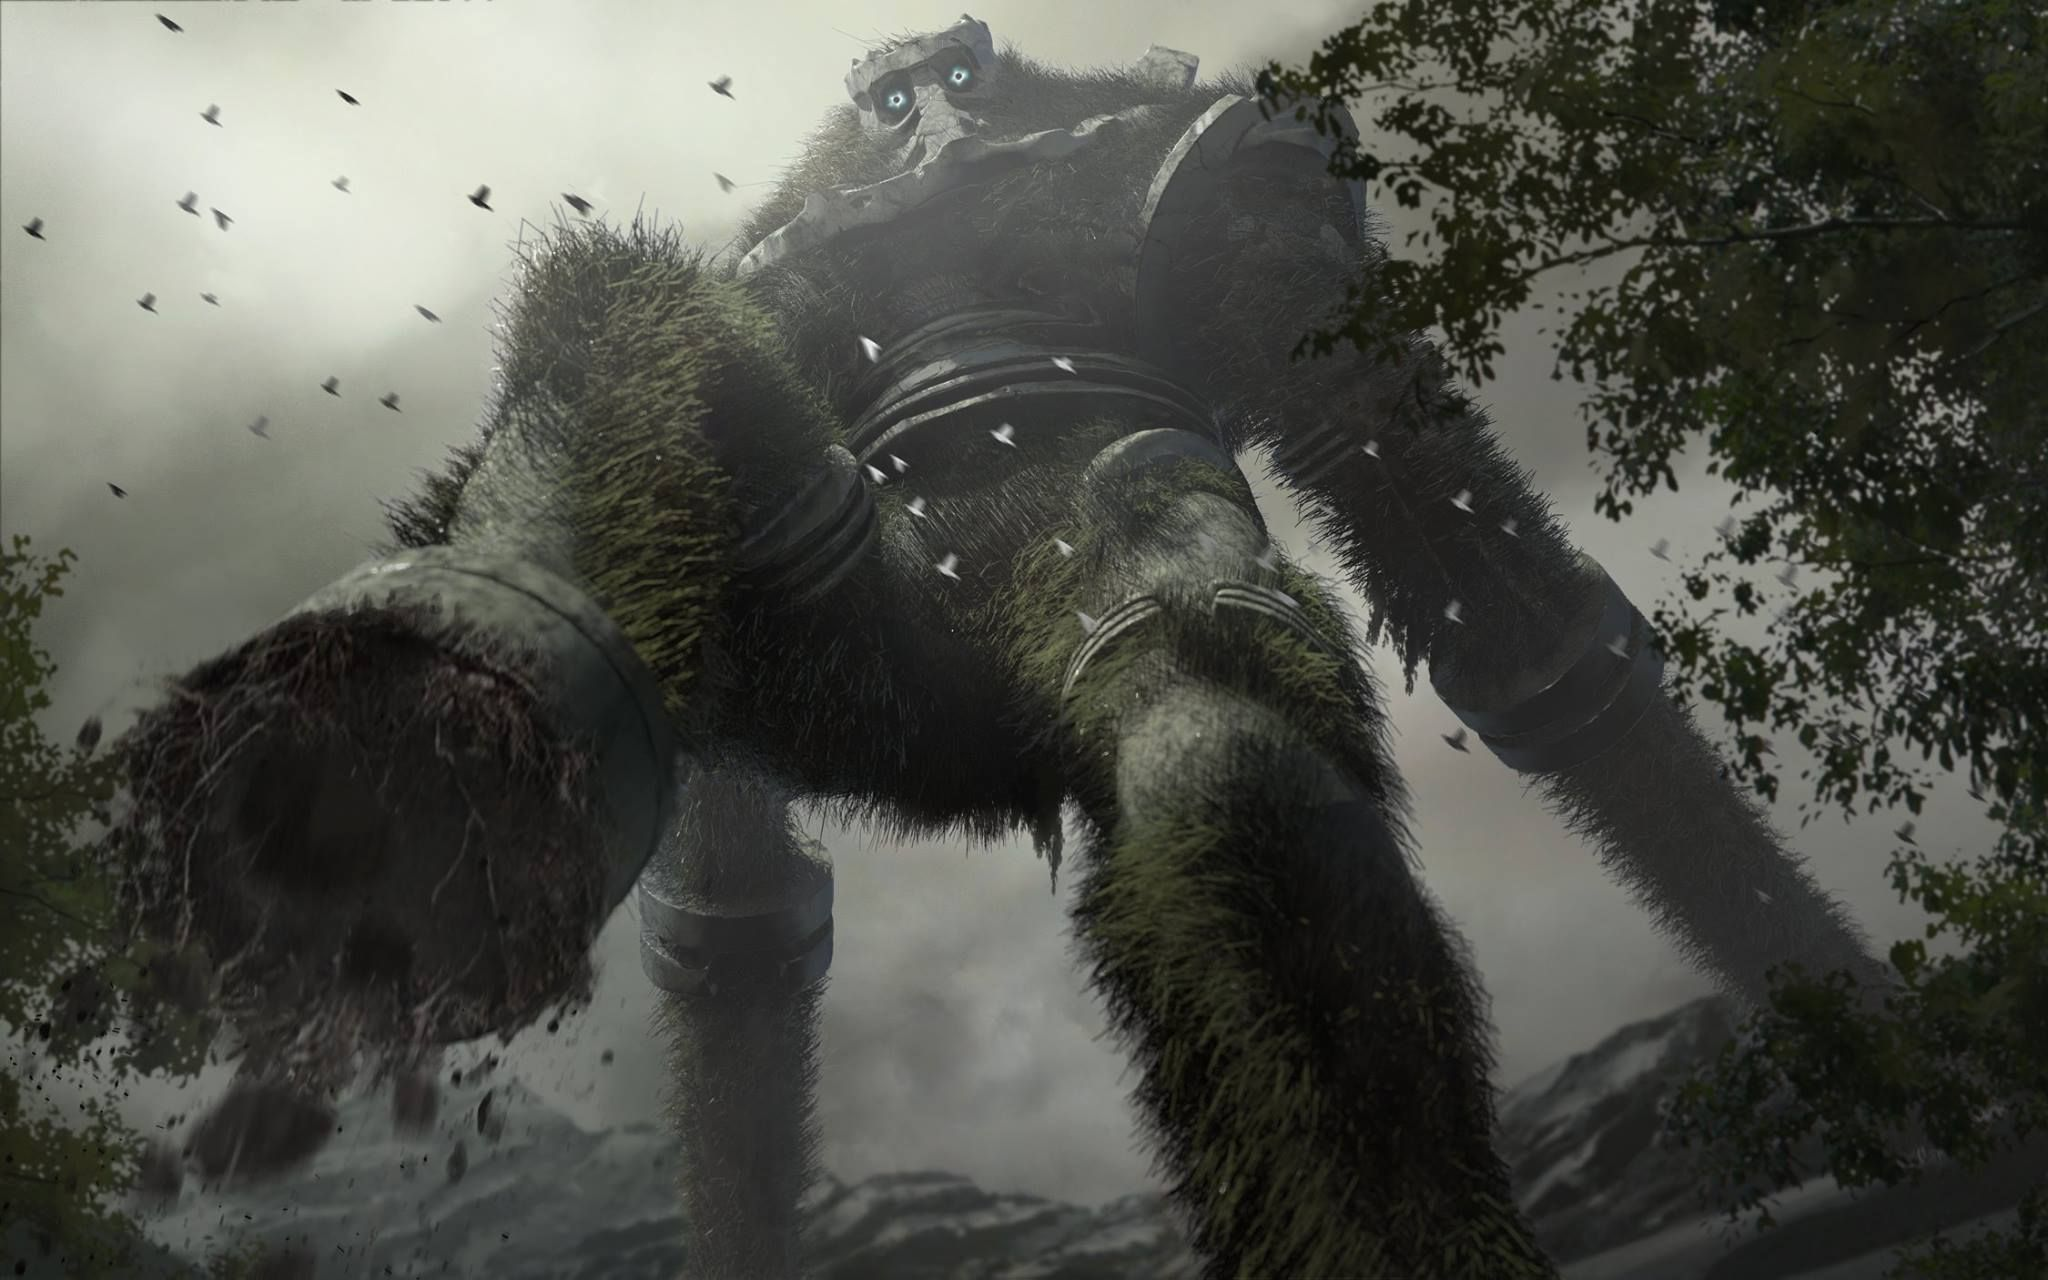 Shadow of the Colossus redesign by Josh Ellem. Link: https://www.facebook.com/photo.php?fbid=848454261942070